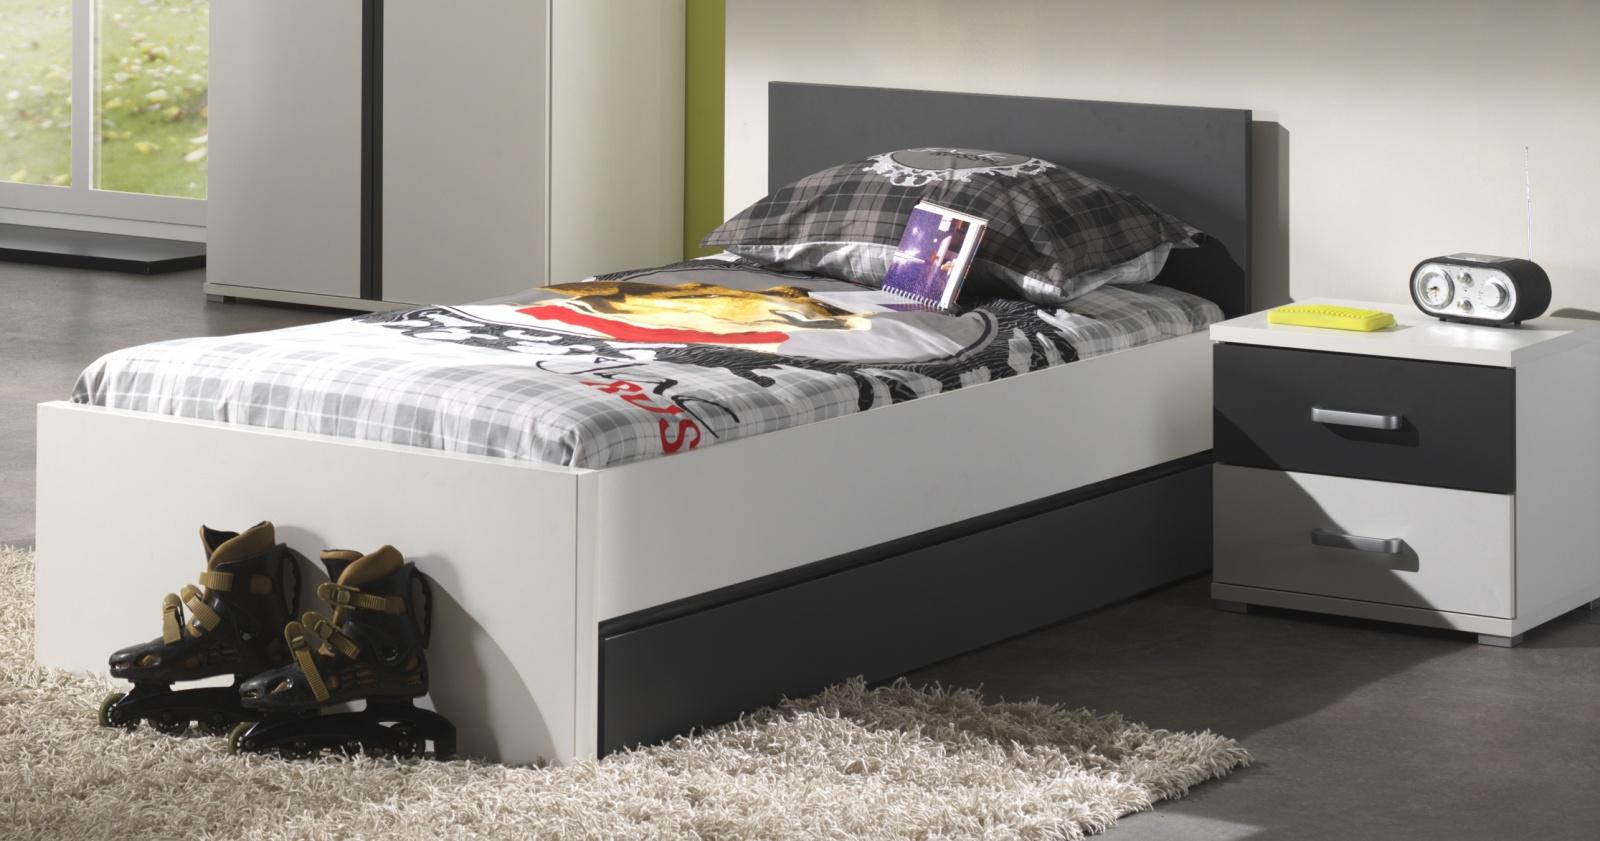 kinderbett linde 90x200 cm in wei mdf kaufen bei m bel lux. Black Bedroom Furniture Sets. Home Design Ideas